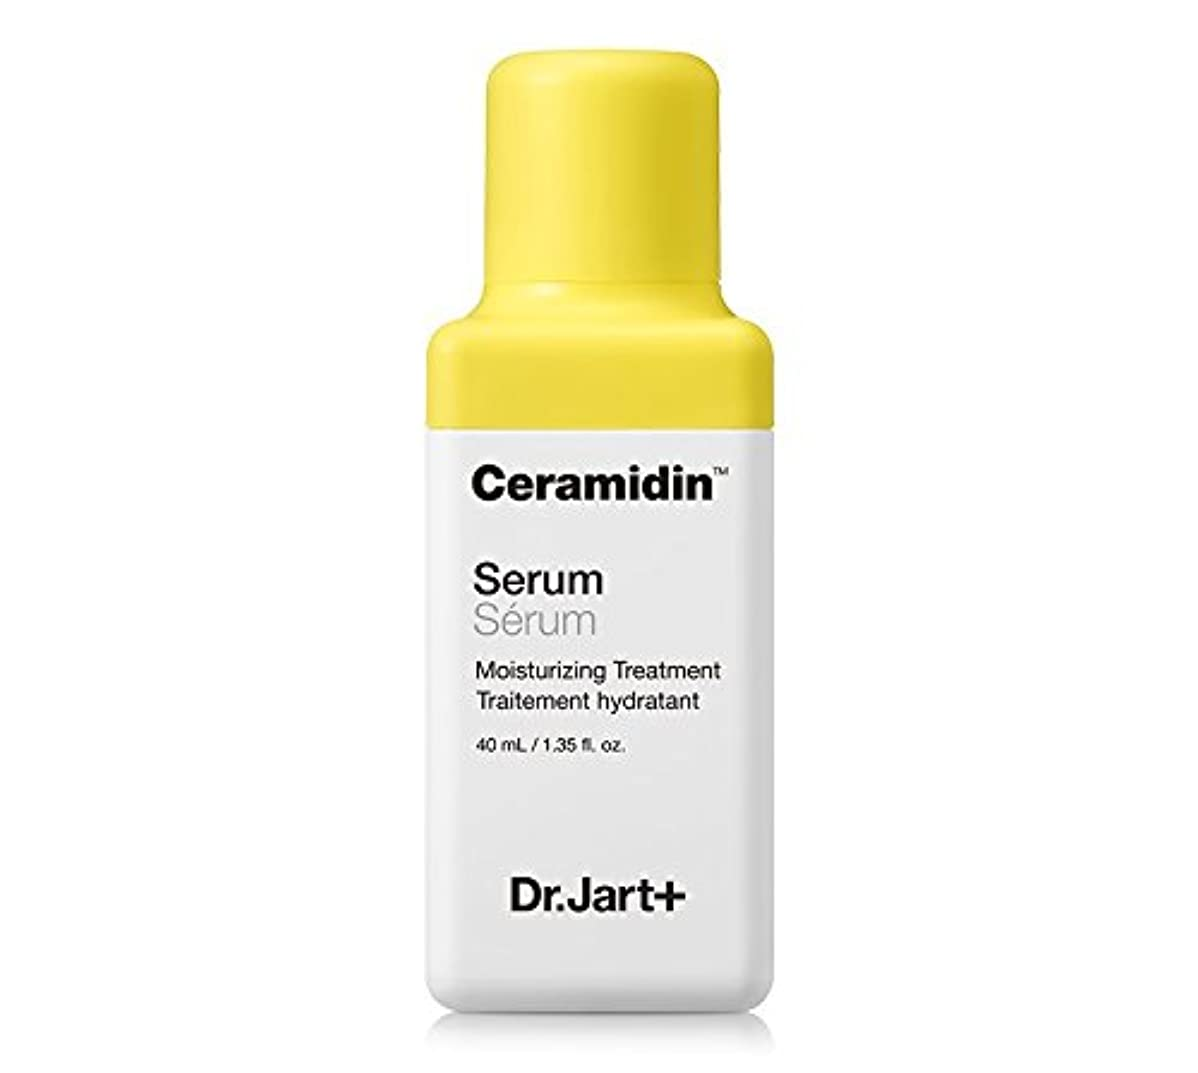 モーテル防衛意図的Dr. Jart New Ceramidin Serum 40ml Highly-intensive filler serum 高強度充填剤血清